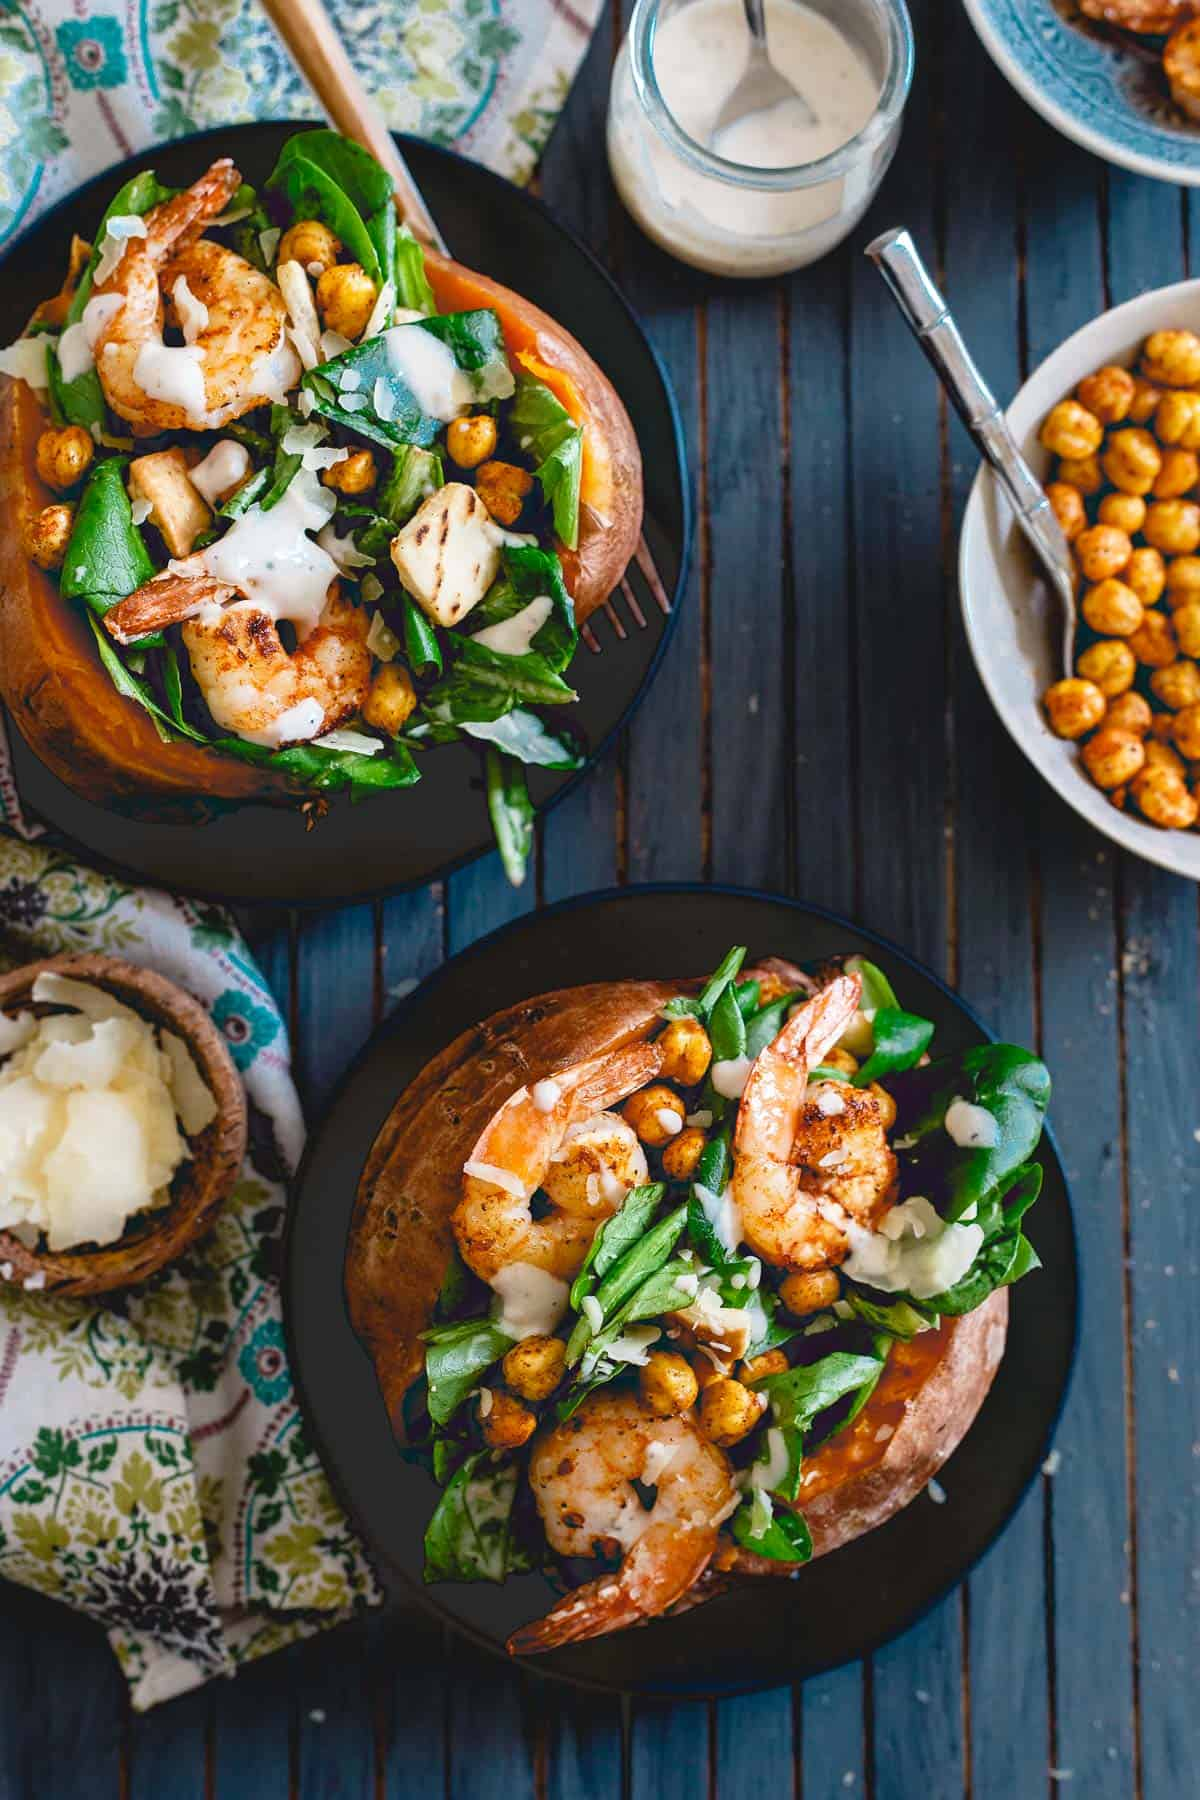 Spicy shrimp and roasted chickpeas add a bunch of flavor and satiety to these caesar salad stuffed sweet potatoes.